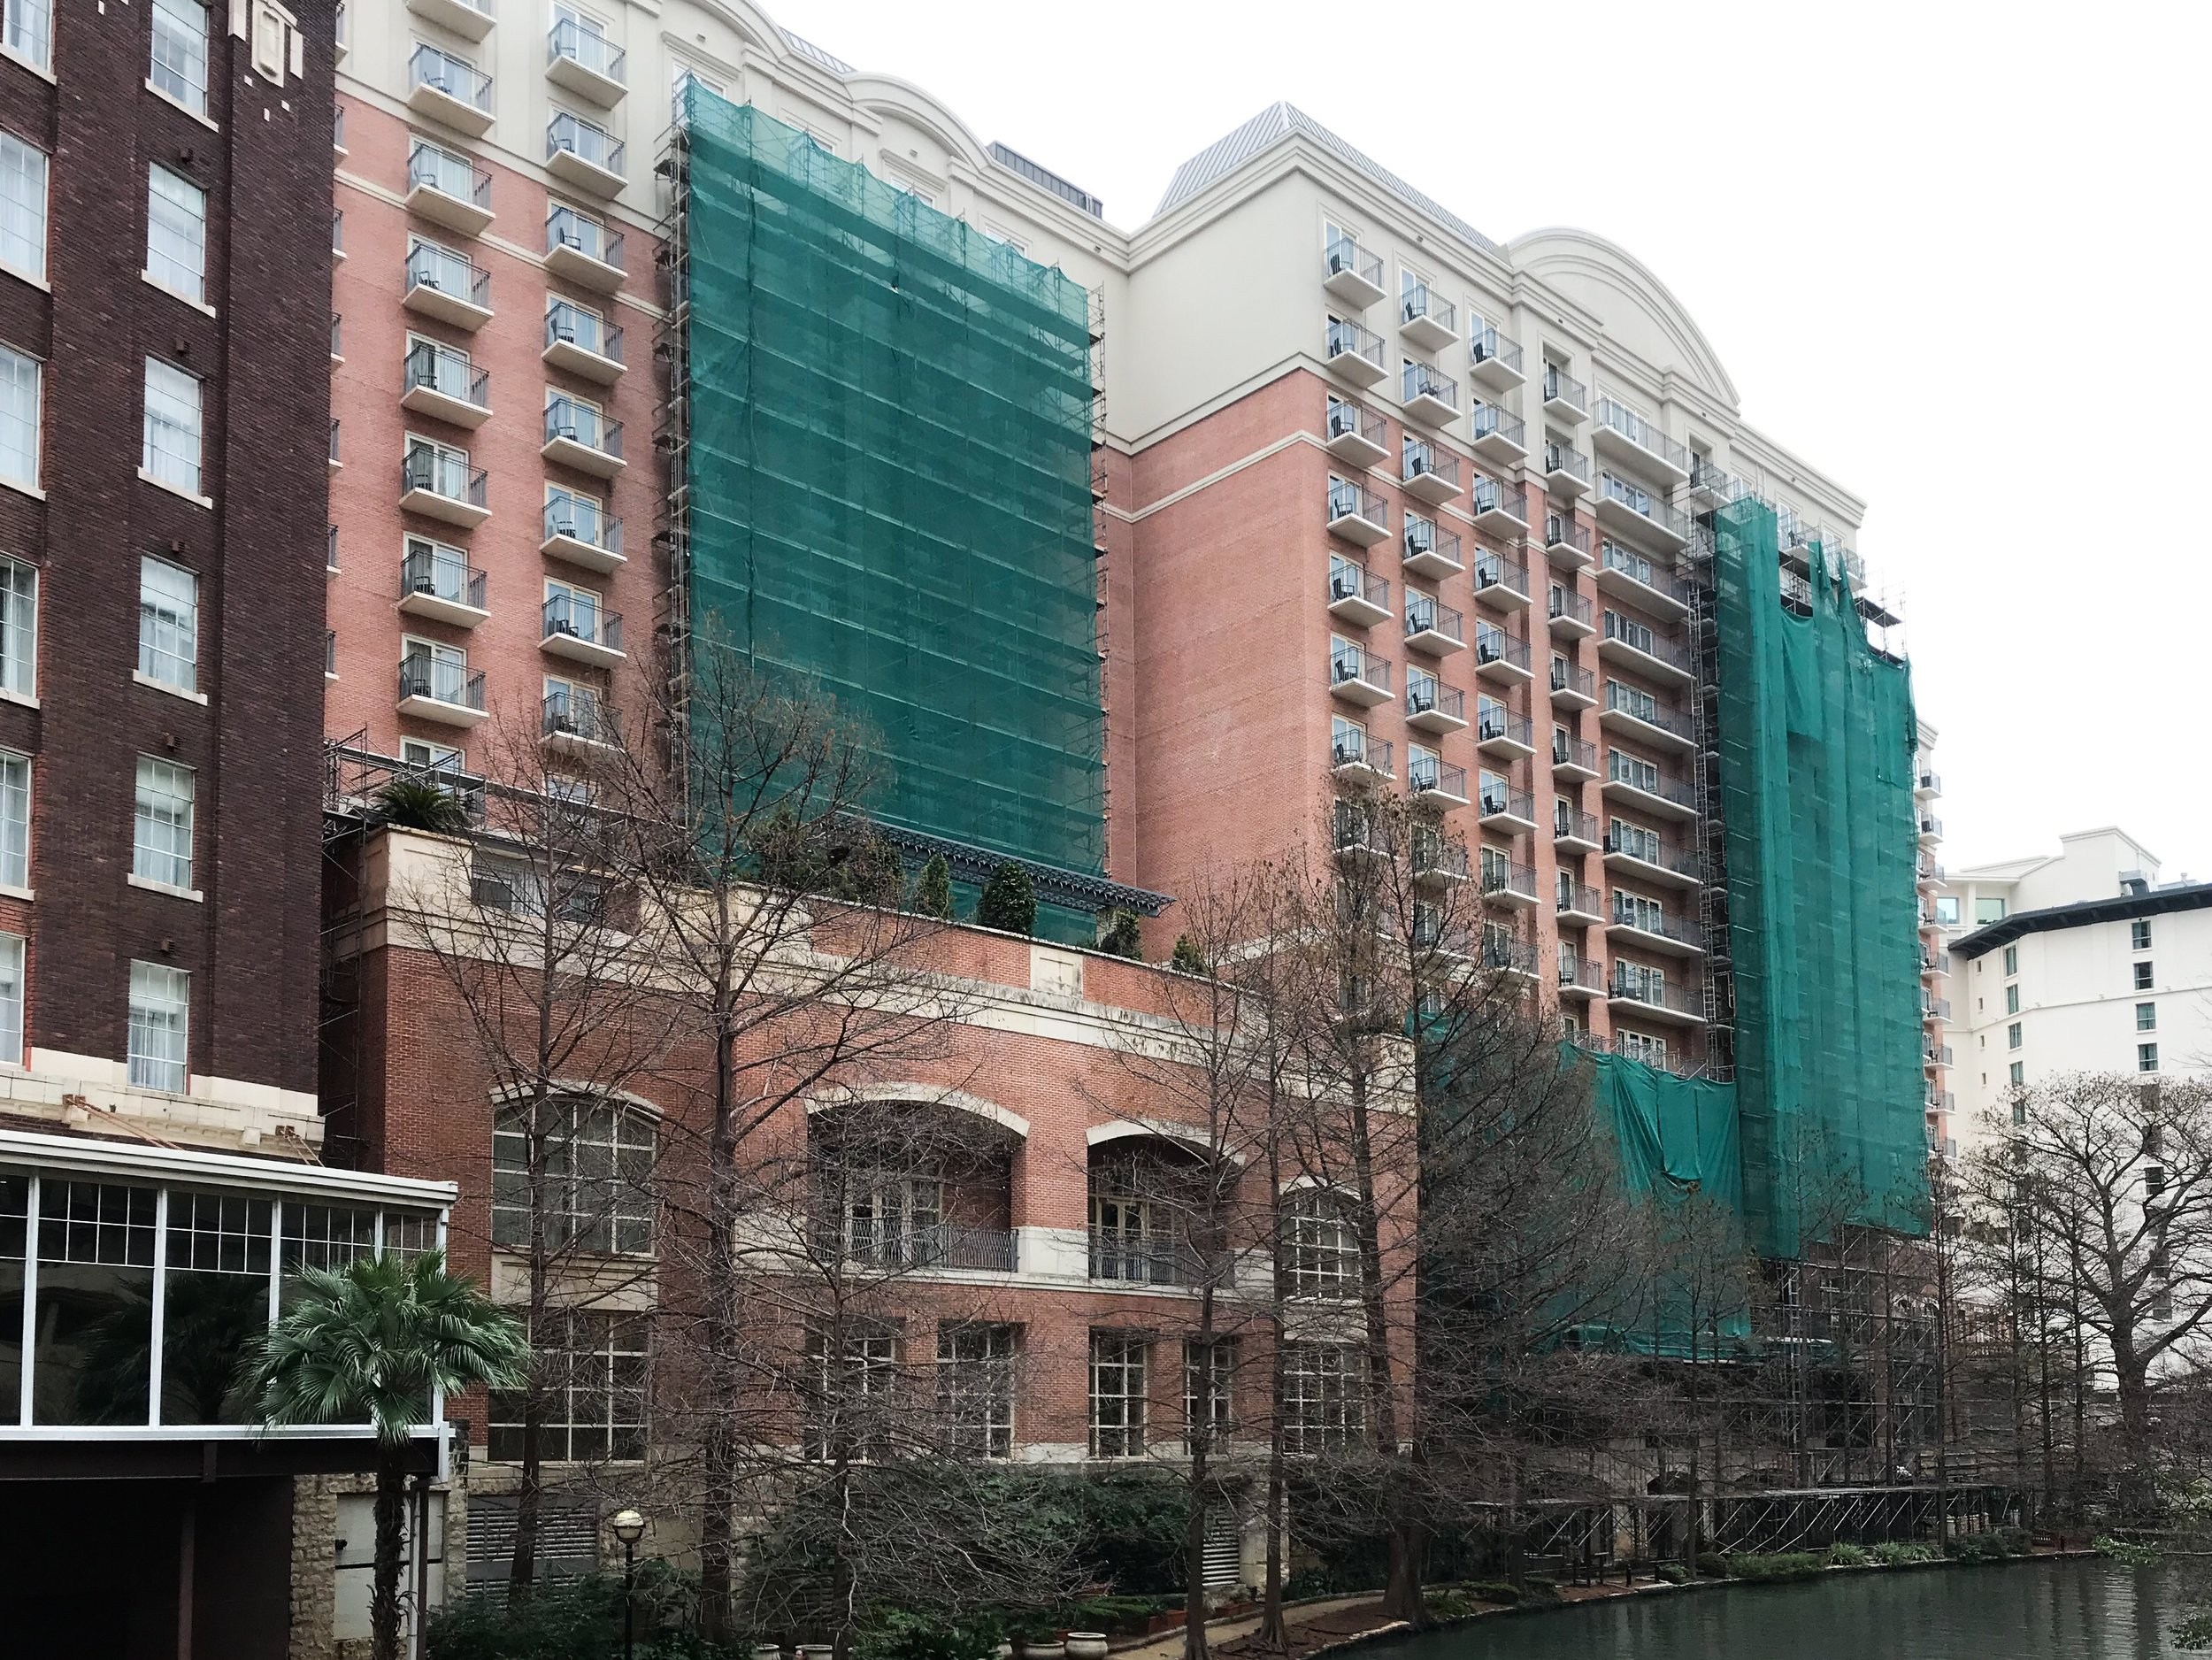 All of the rooms on the River Walk side of the hotel had balconies, but several of them were under construction during my stay.